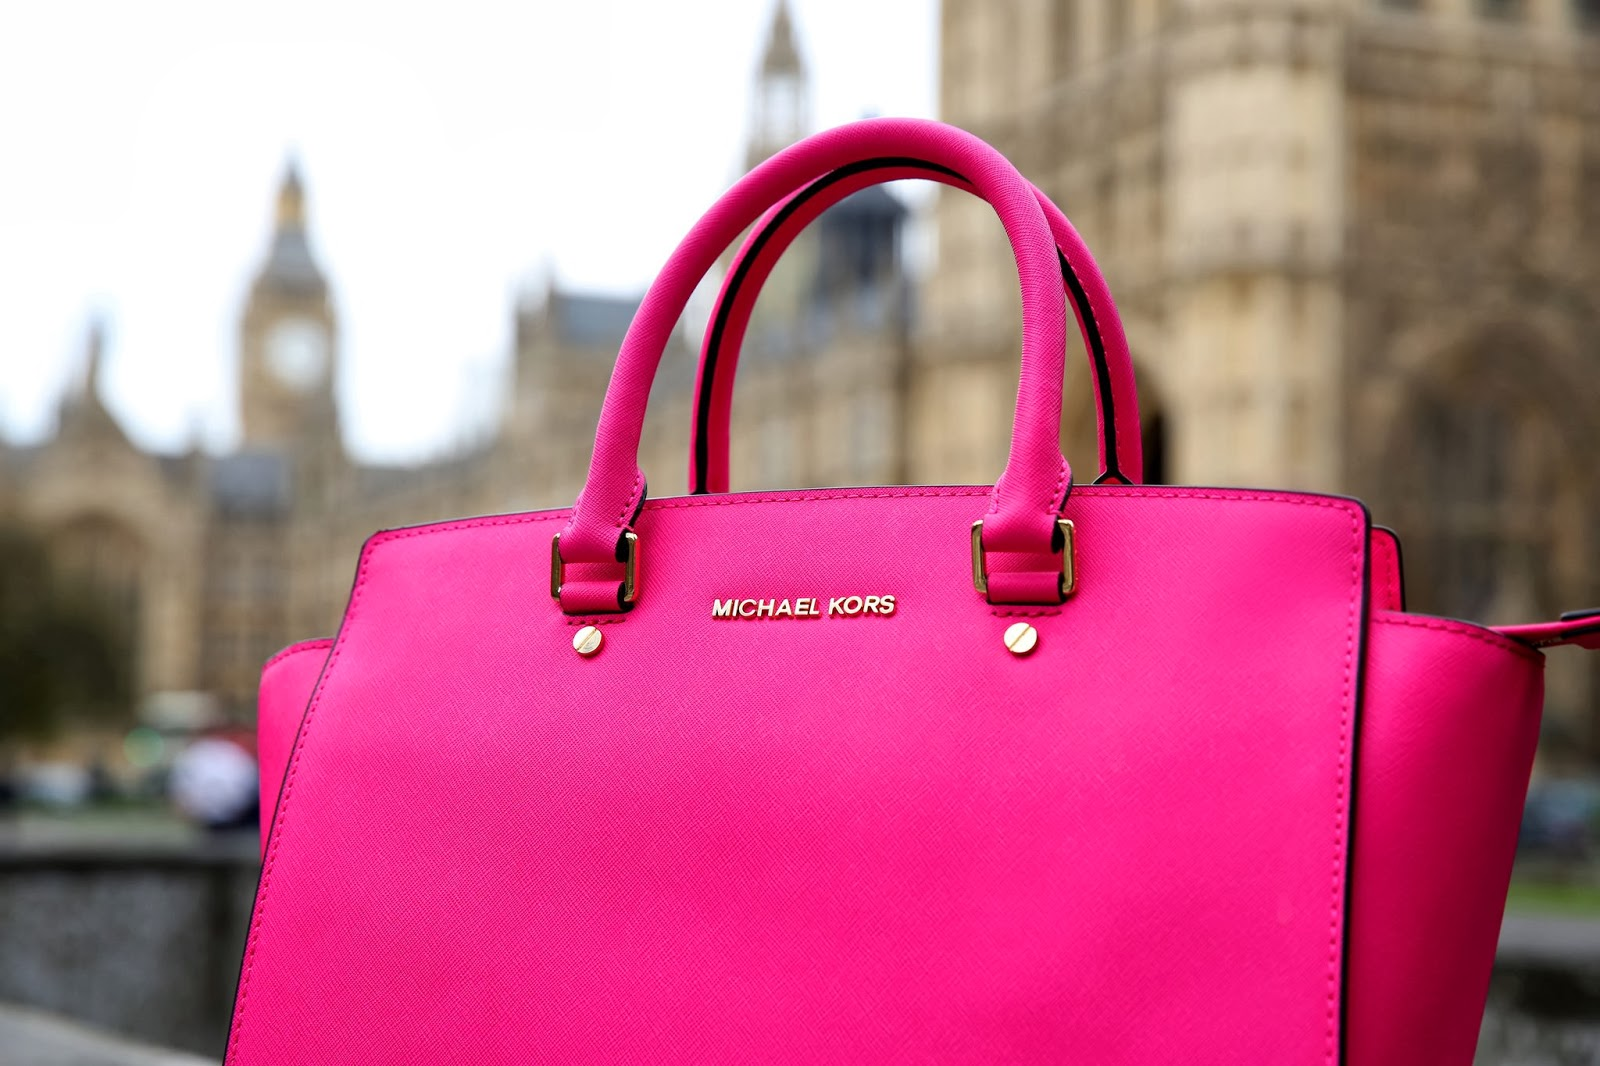 Michael Kors Selma Bag All Around the World - Fashion Trends